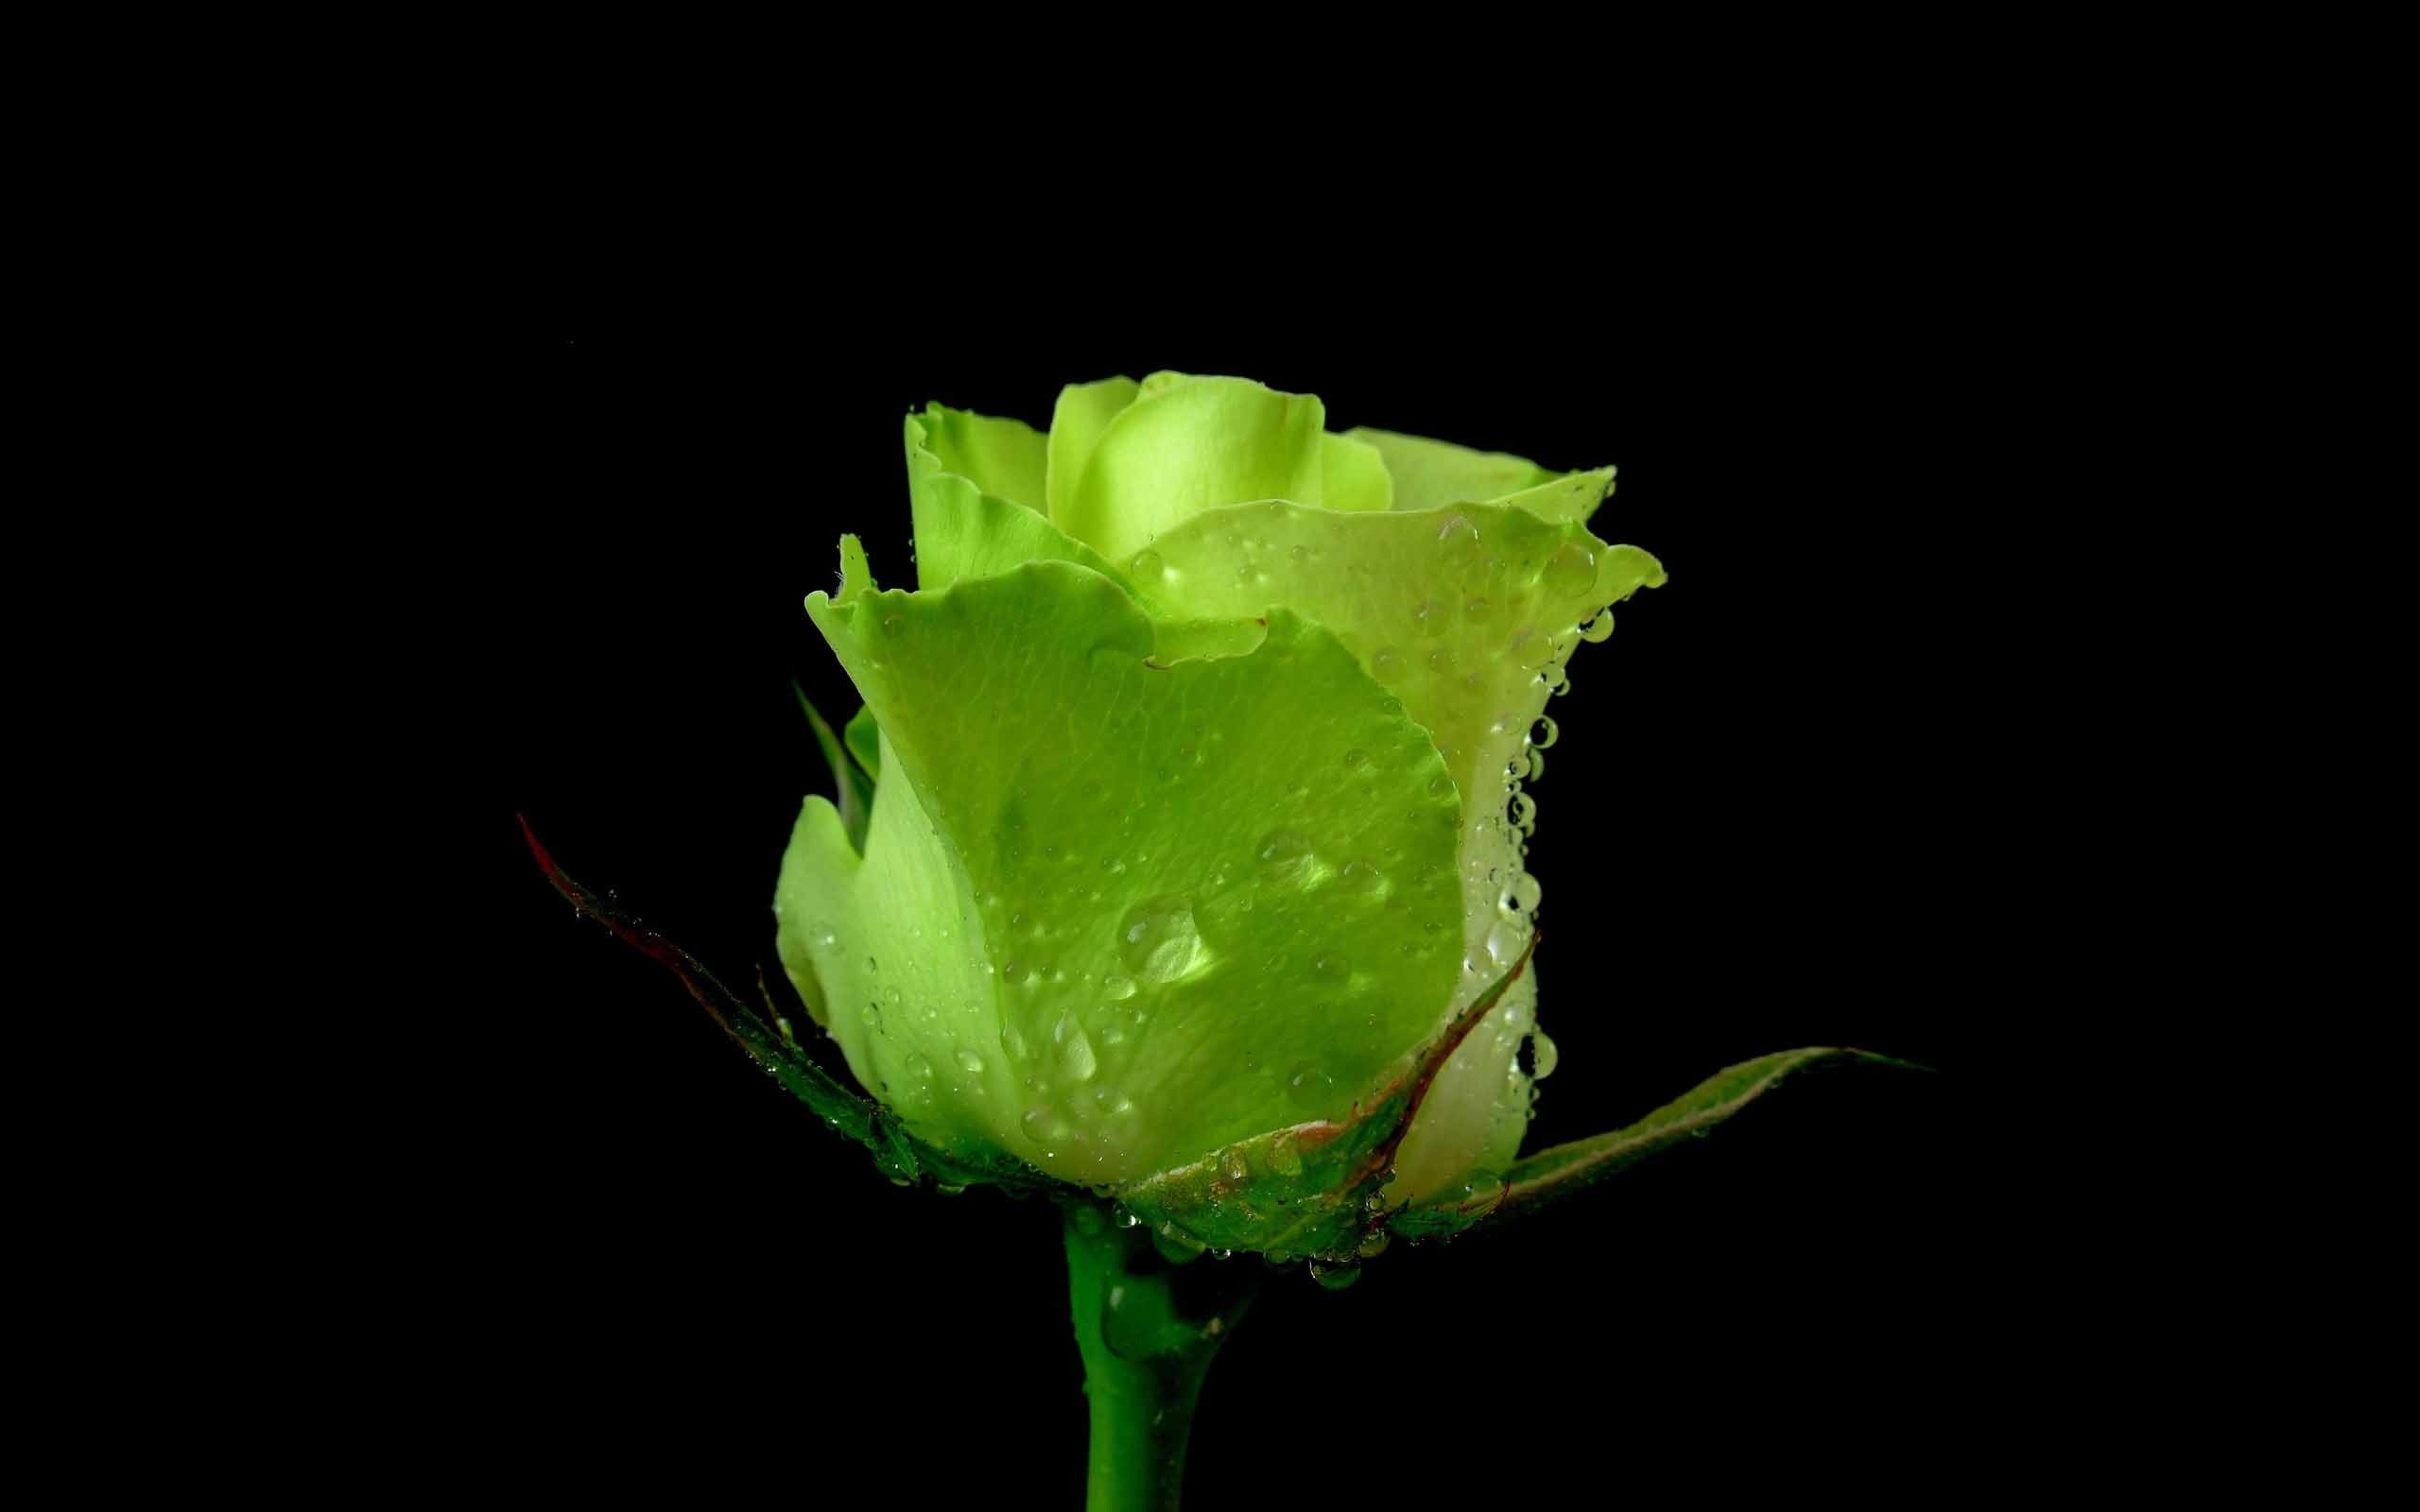 2560x1600 Unseen Green Rose With Black Background Love Wallpaper Green Rose Rose Flower Wallpaper Rose Flower